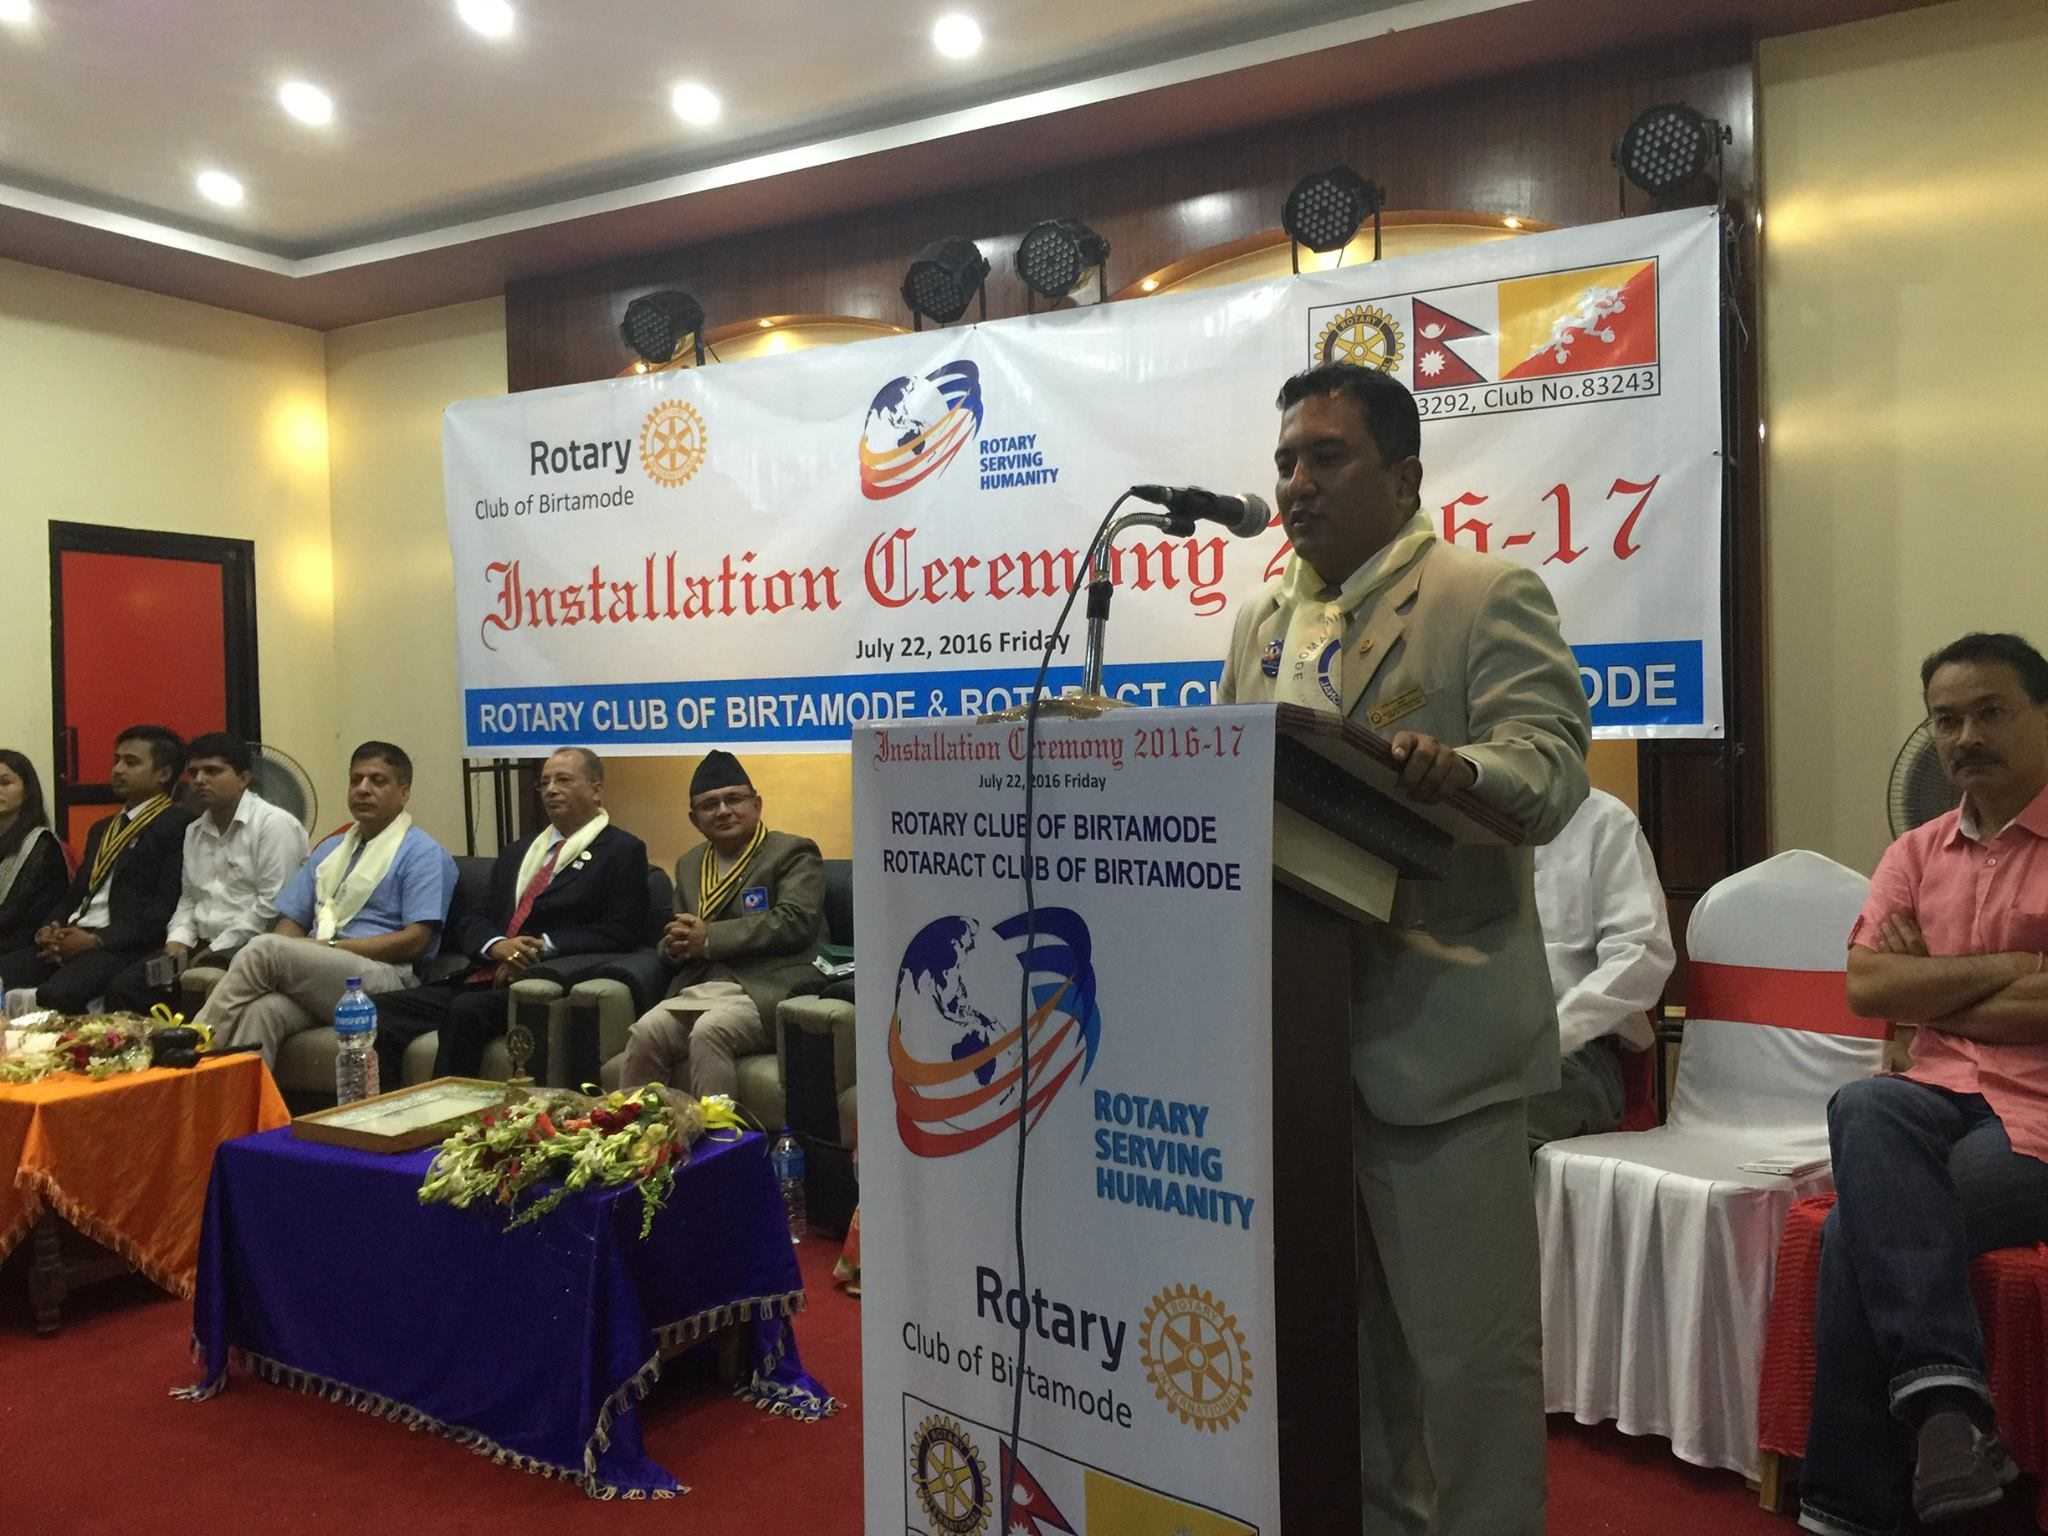 Attending-Installation-Ceremony-of-Neighboring-Rotary-Clubs-Rotary-Club-of-Kakarvitta-9